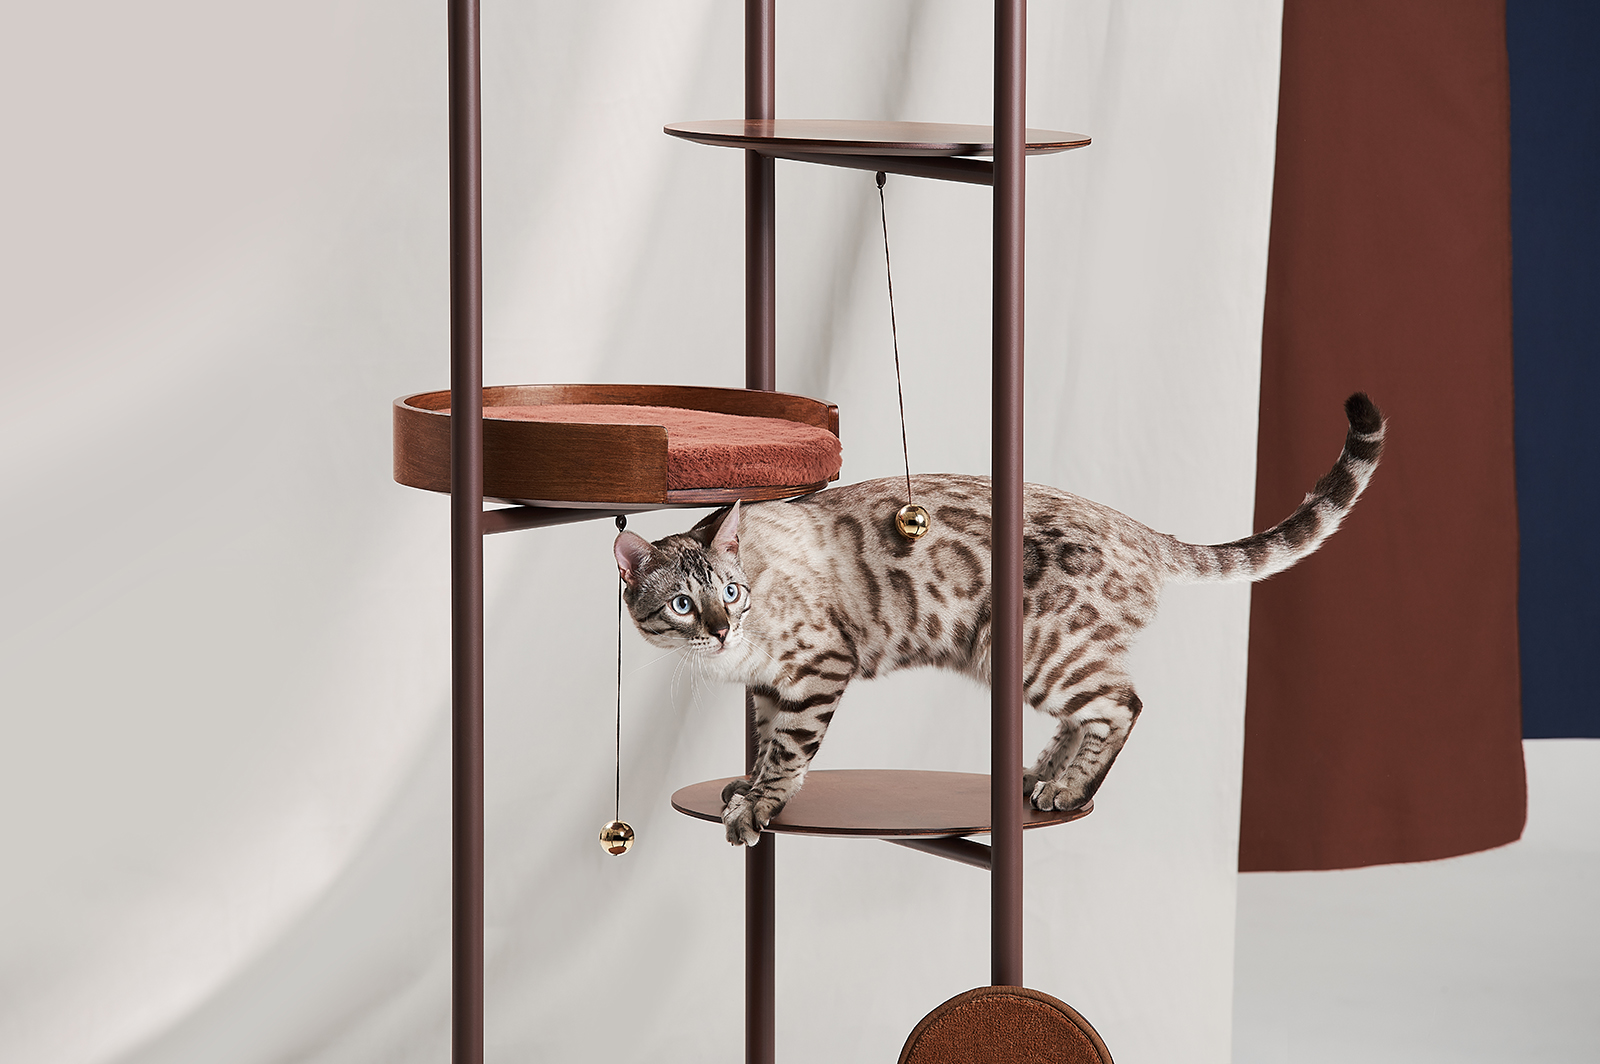 A stylish cat tree you might actually want in your home